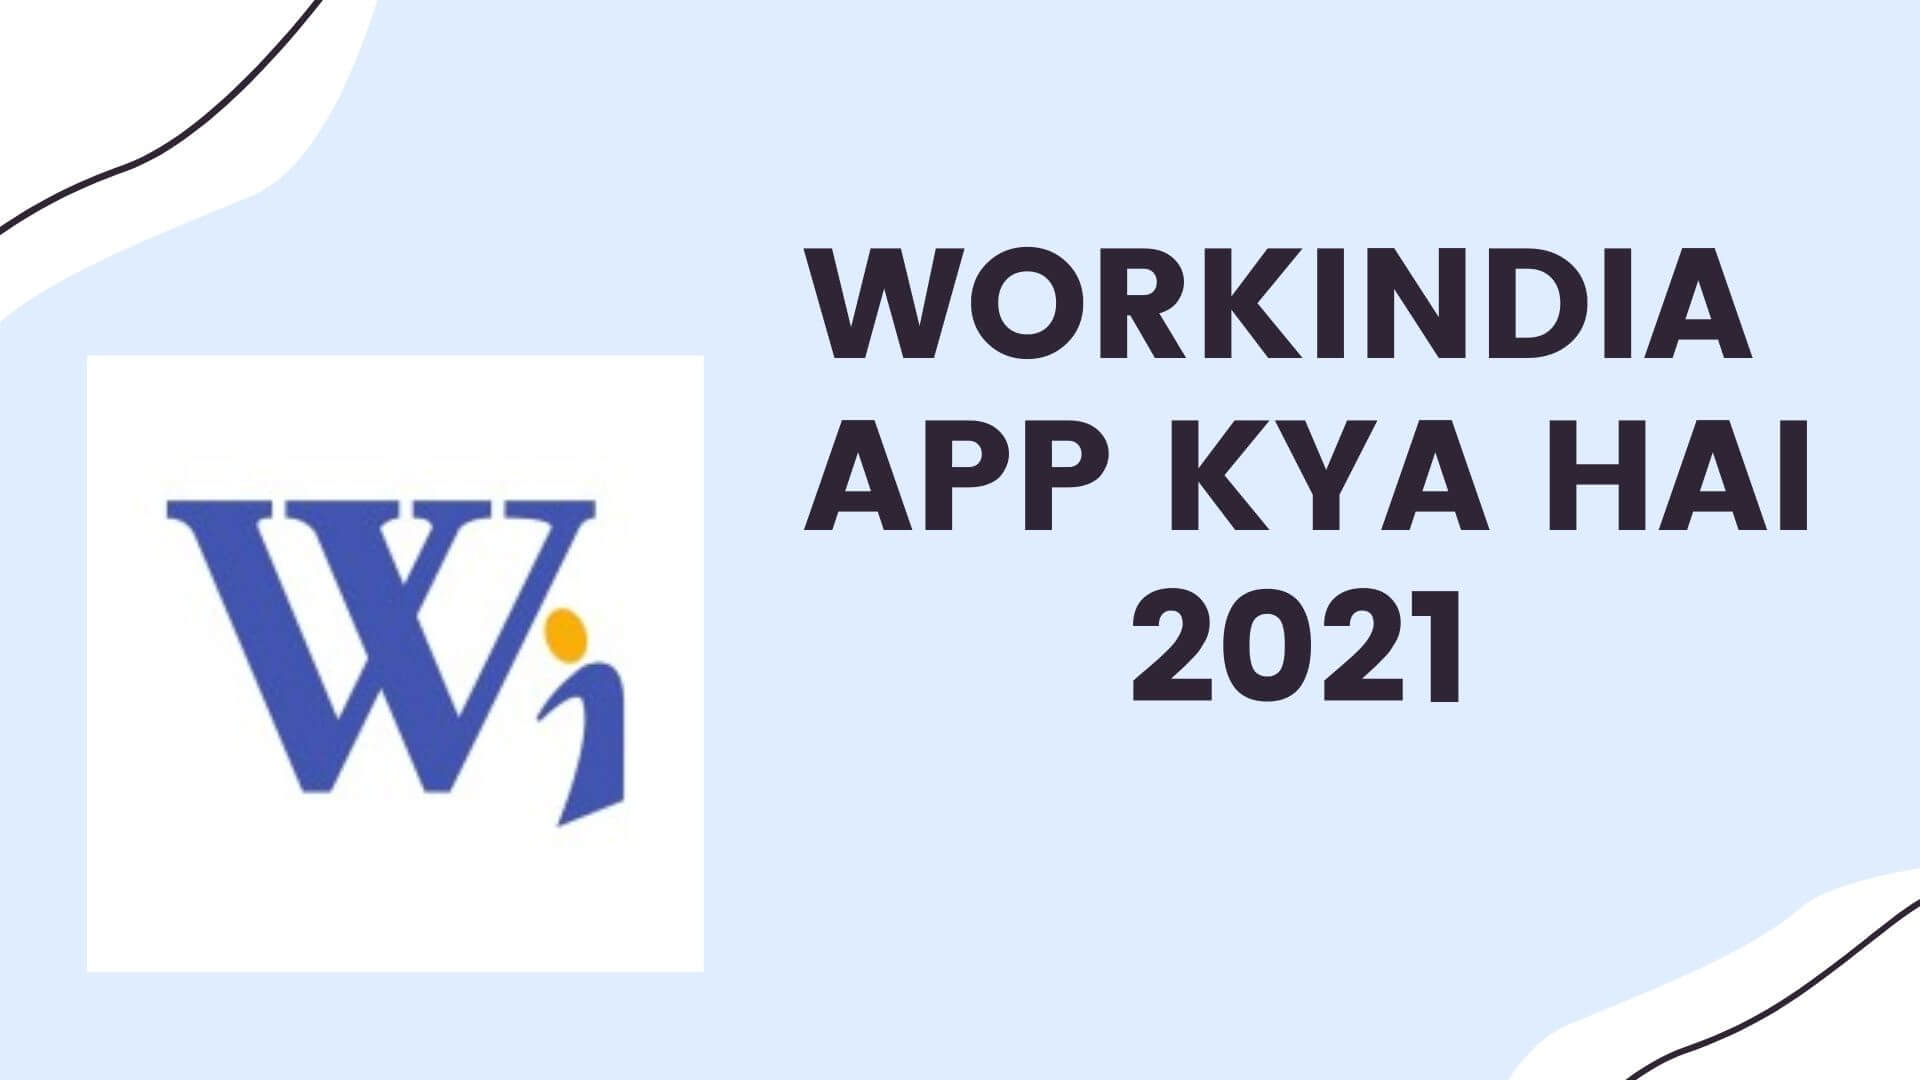 Workindia app kya hai